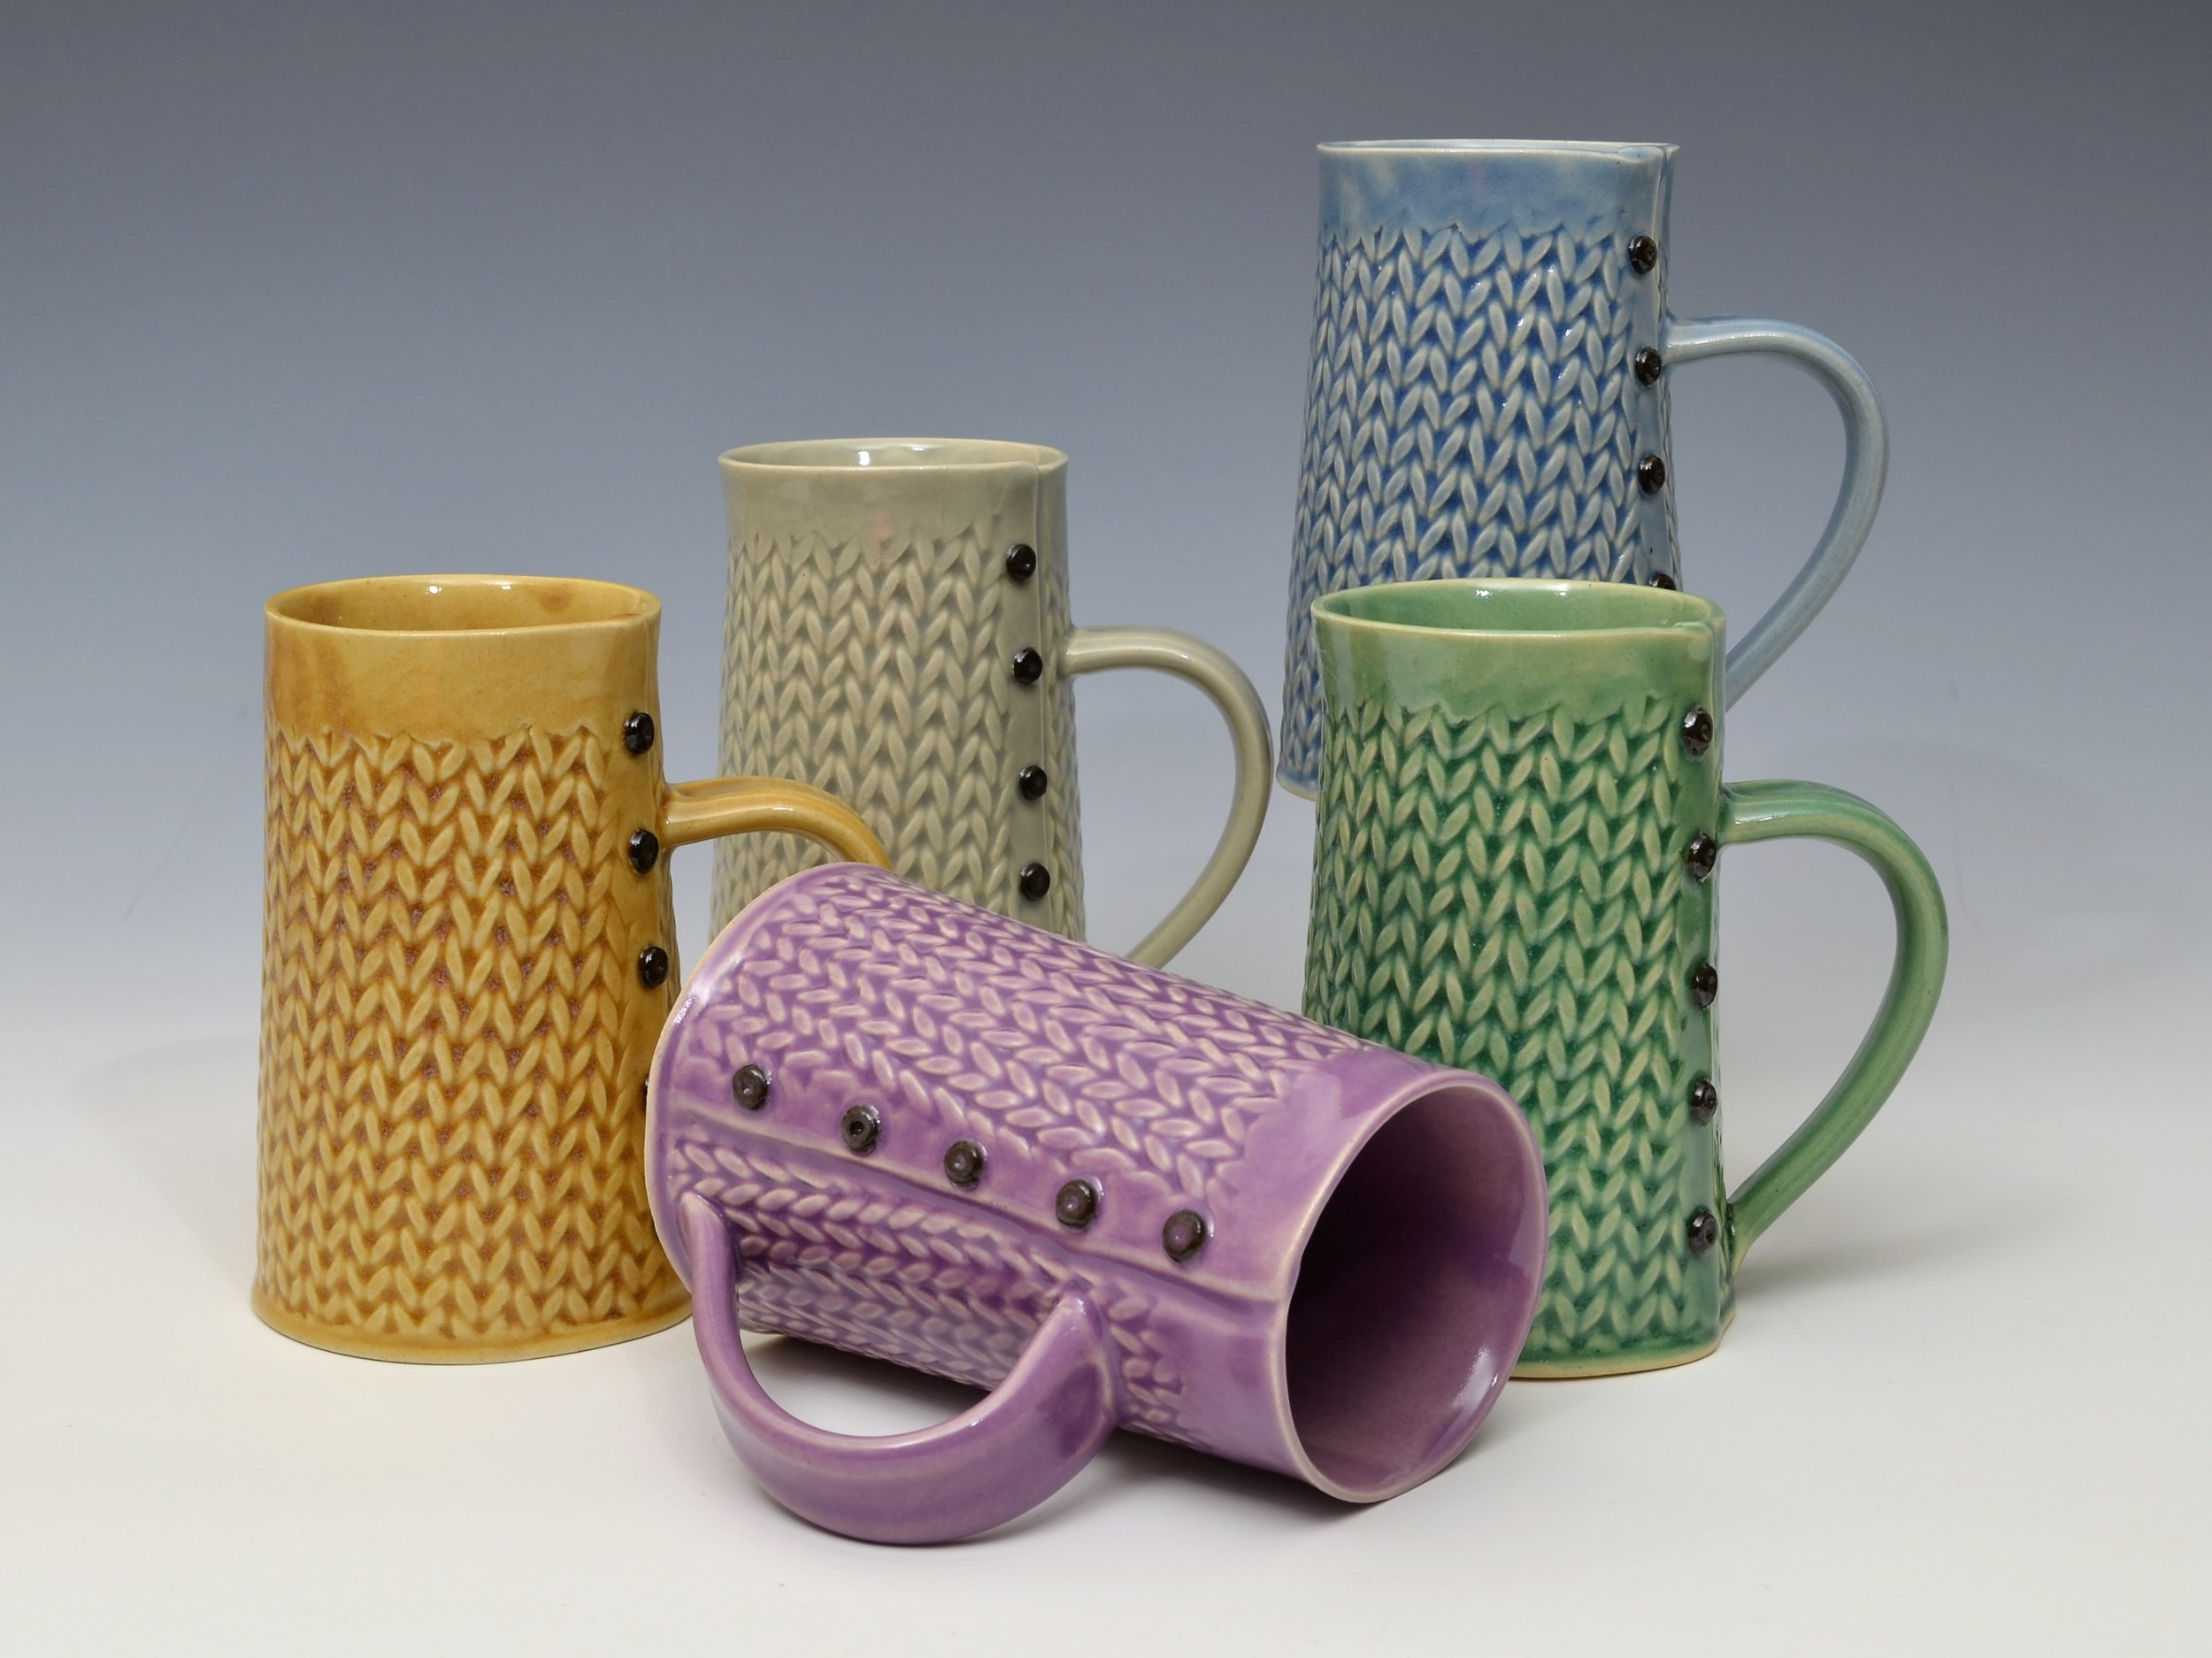 Jumbo Knitted Mugs.JPG